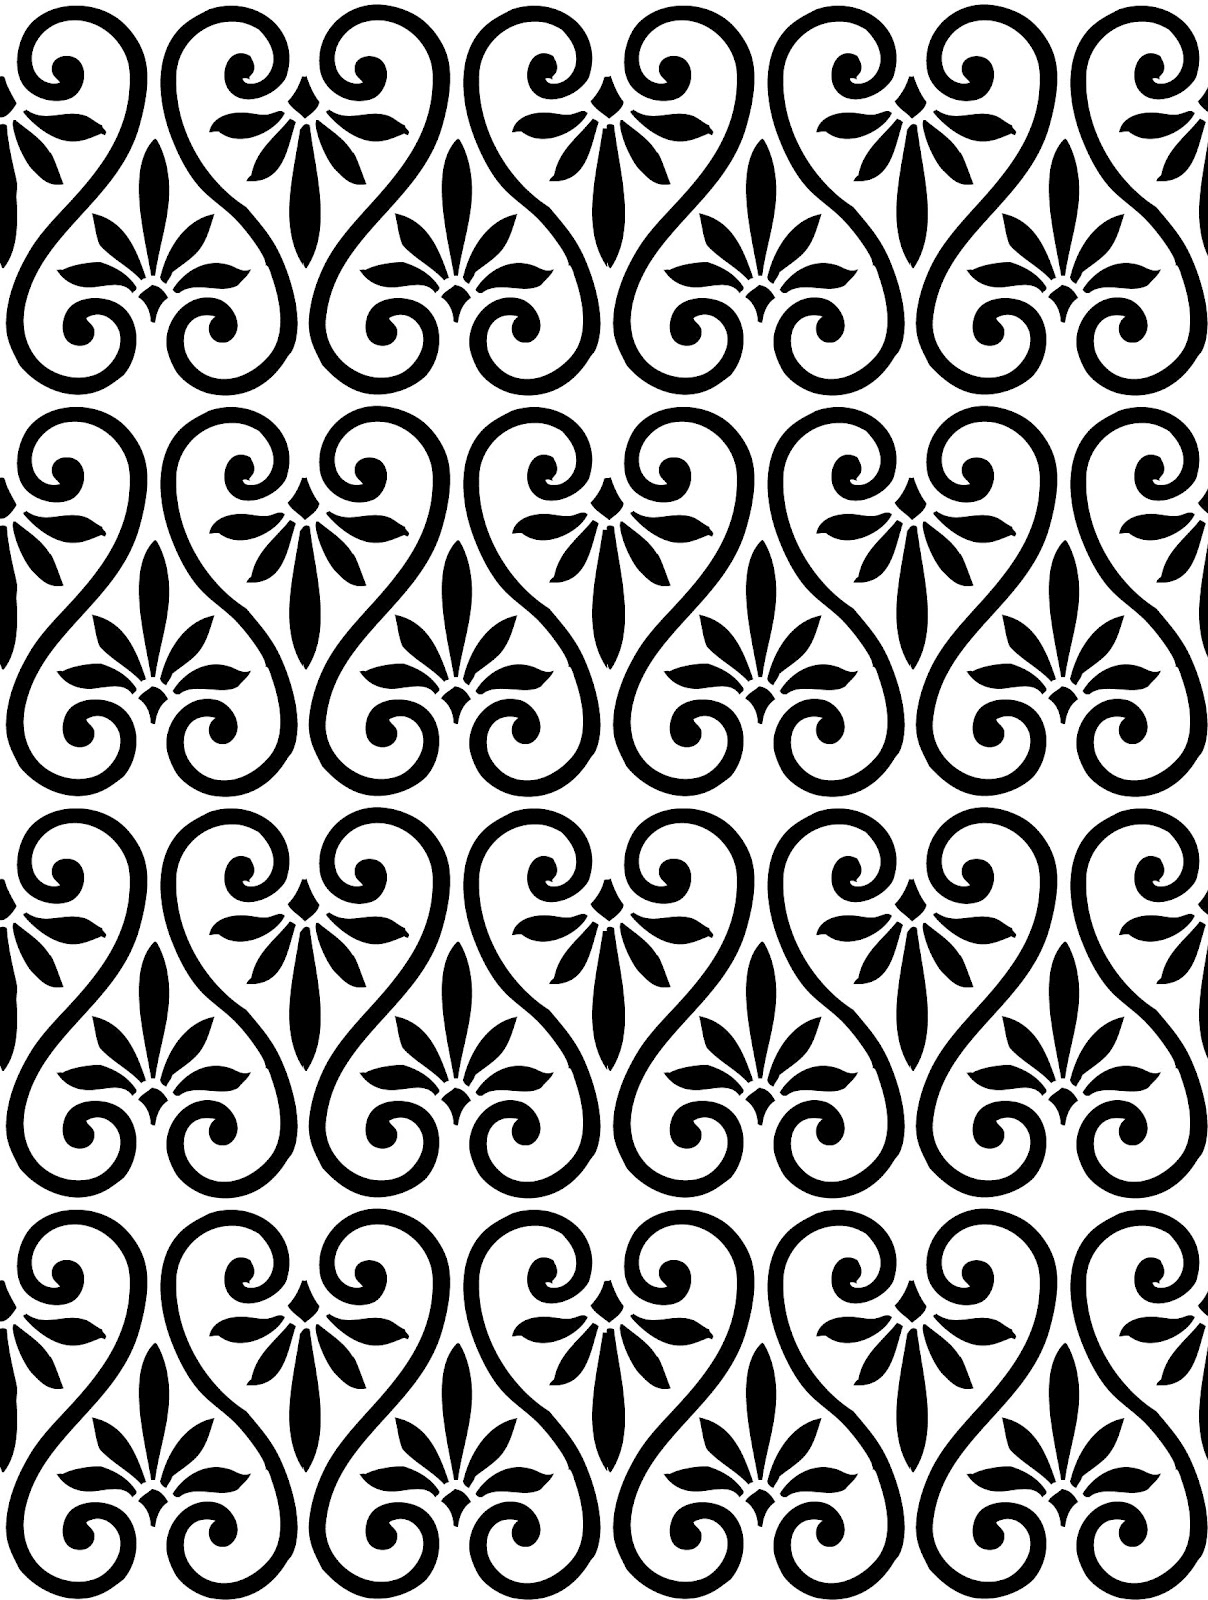 12 Simple Graphic Patterns Images